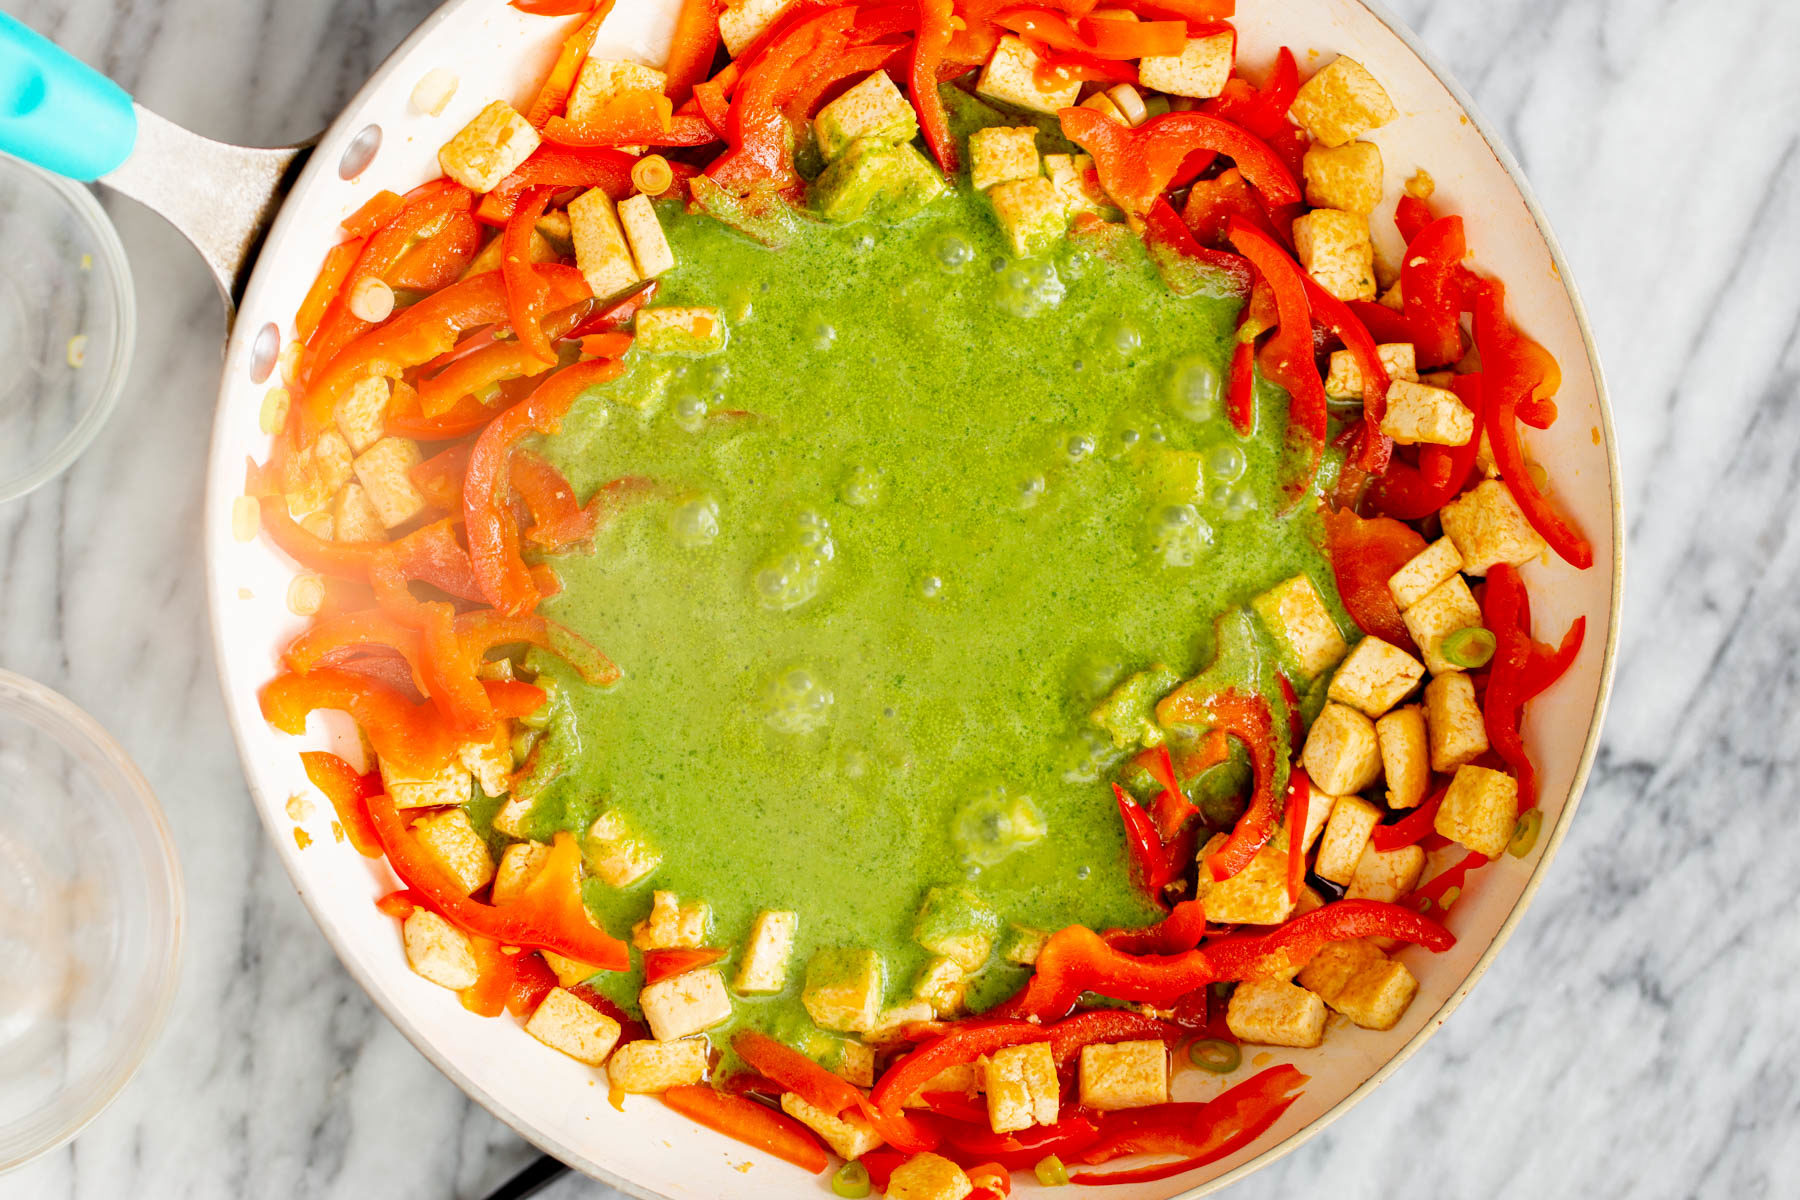 green curry sauce being poured into a frying pan with sauteed bell peppers and tofu cubes